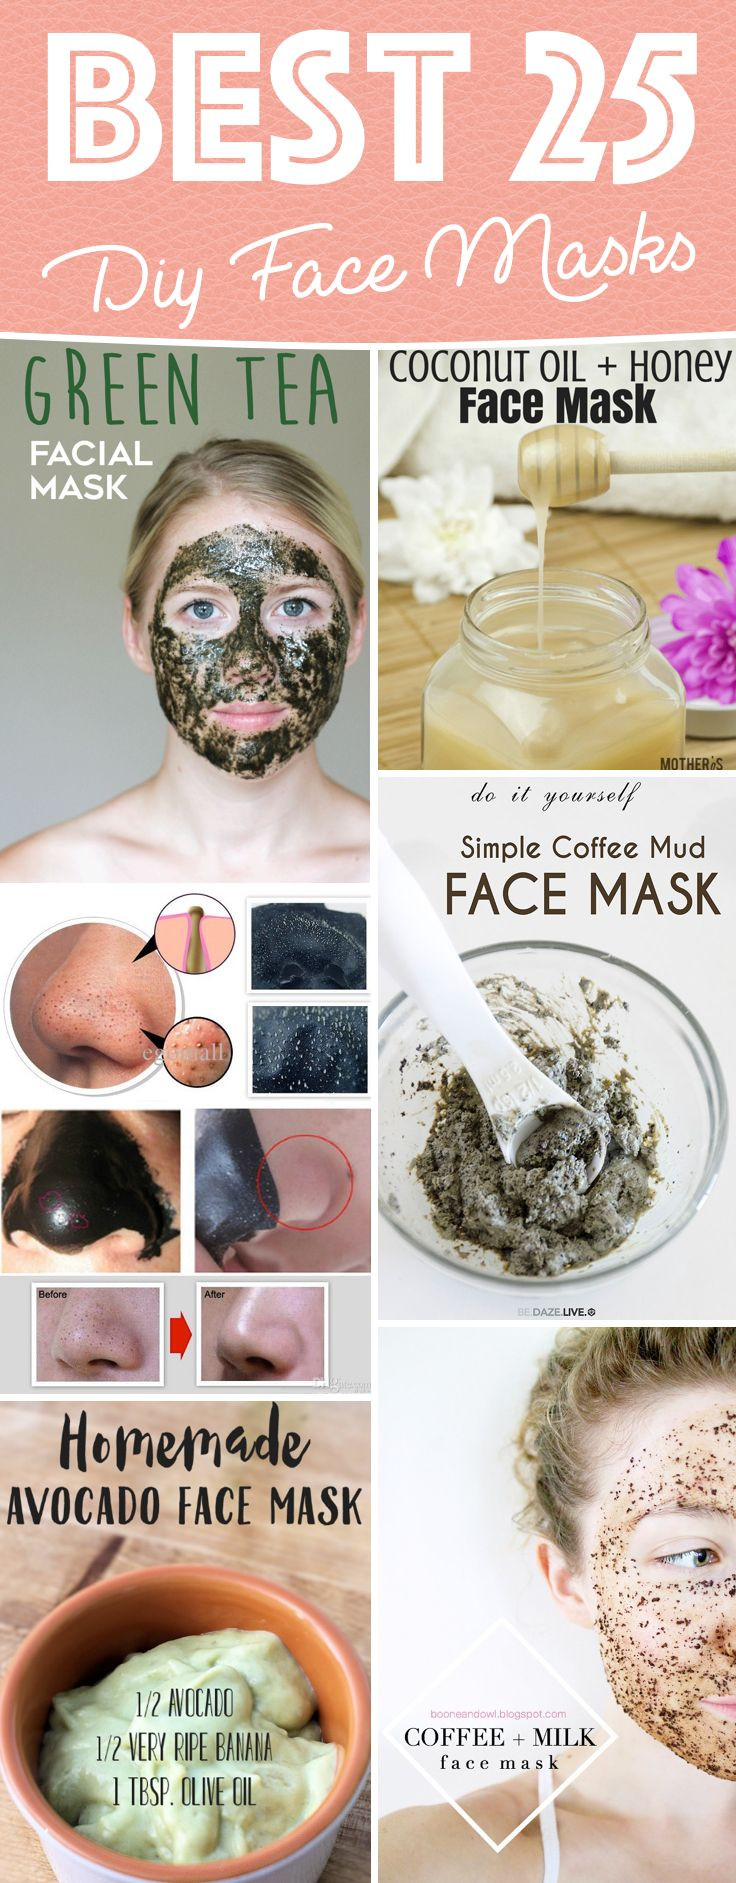 Best ideas about Best DIY Face Mask For Acne . Save or Pin 25 best ideas about Homemade Face Masks on Pinterest Now.